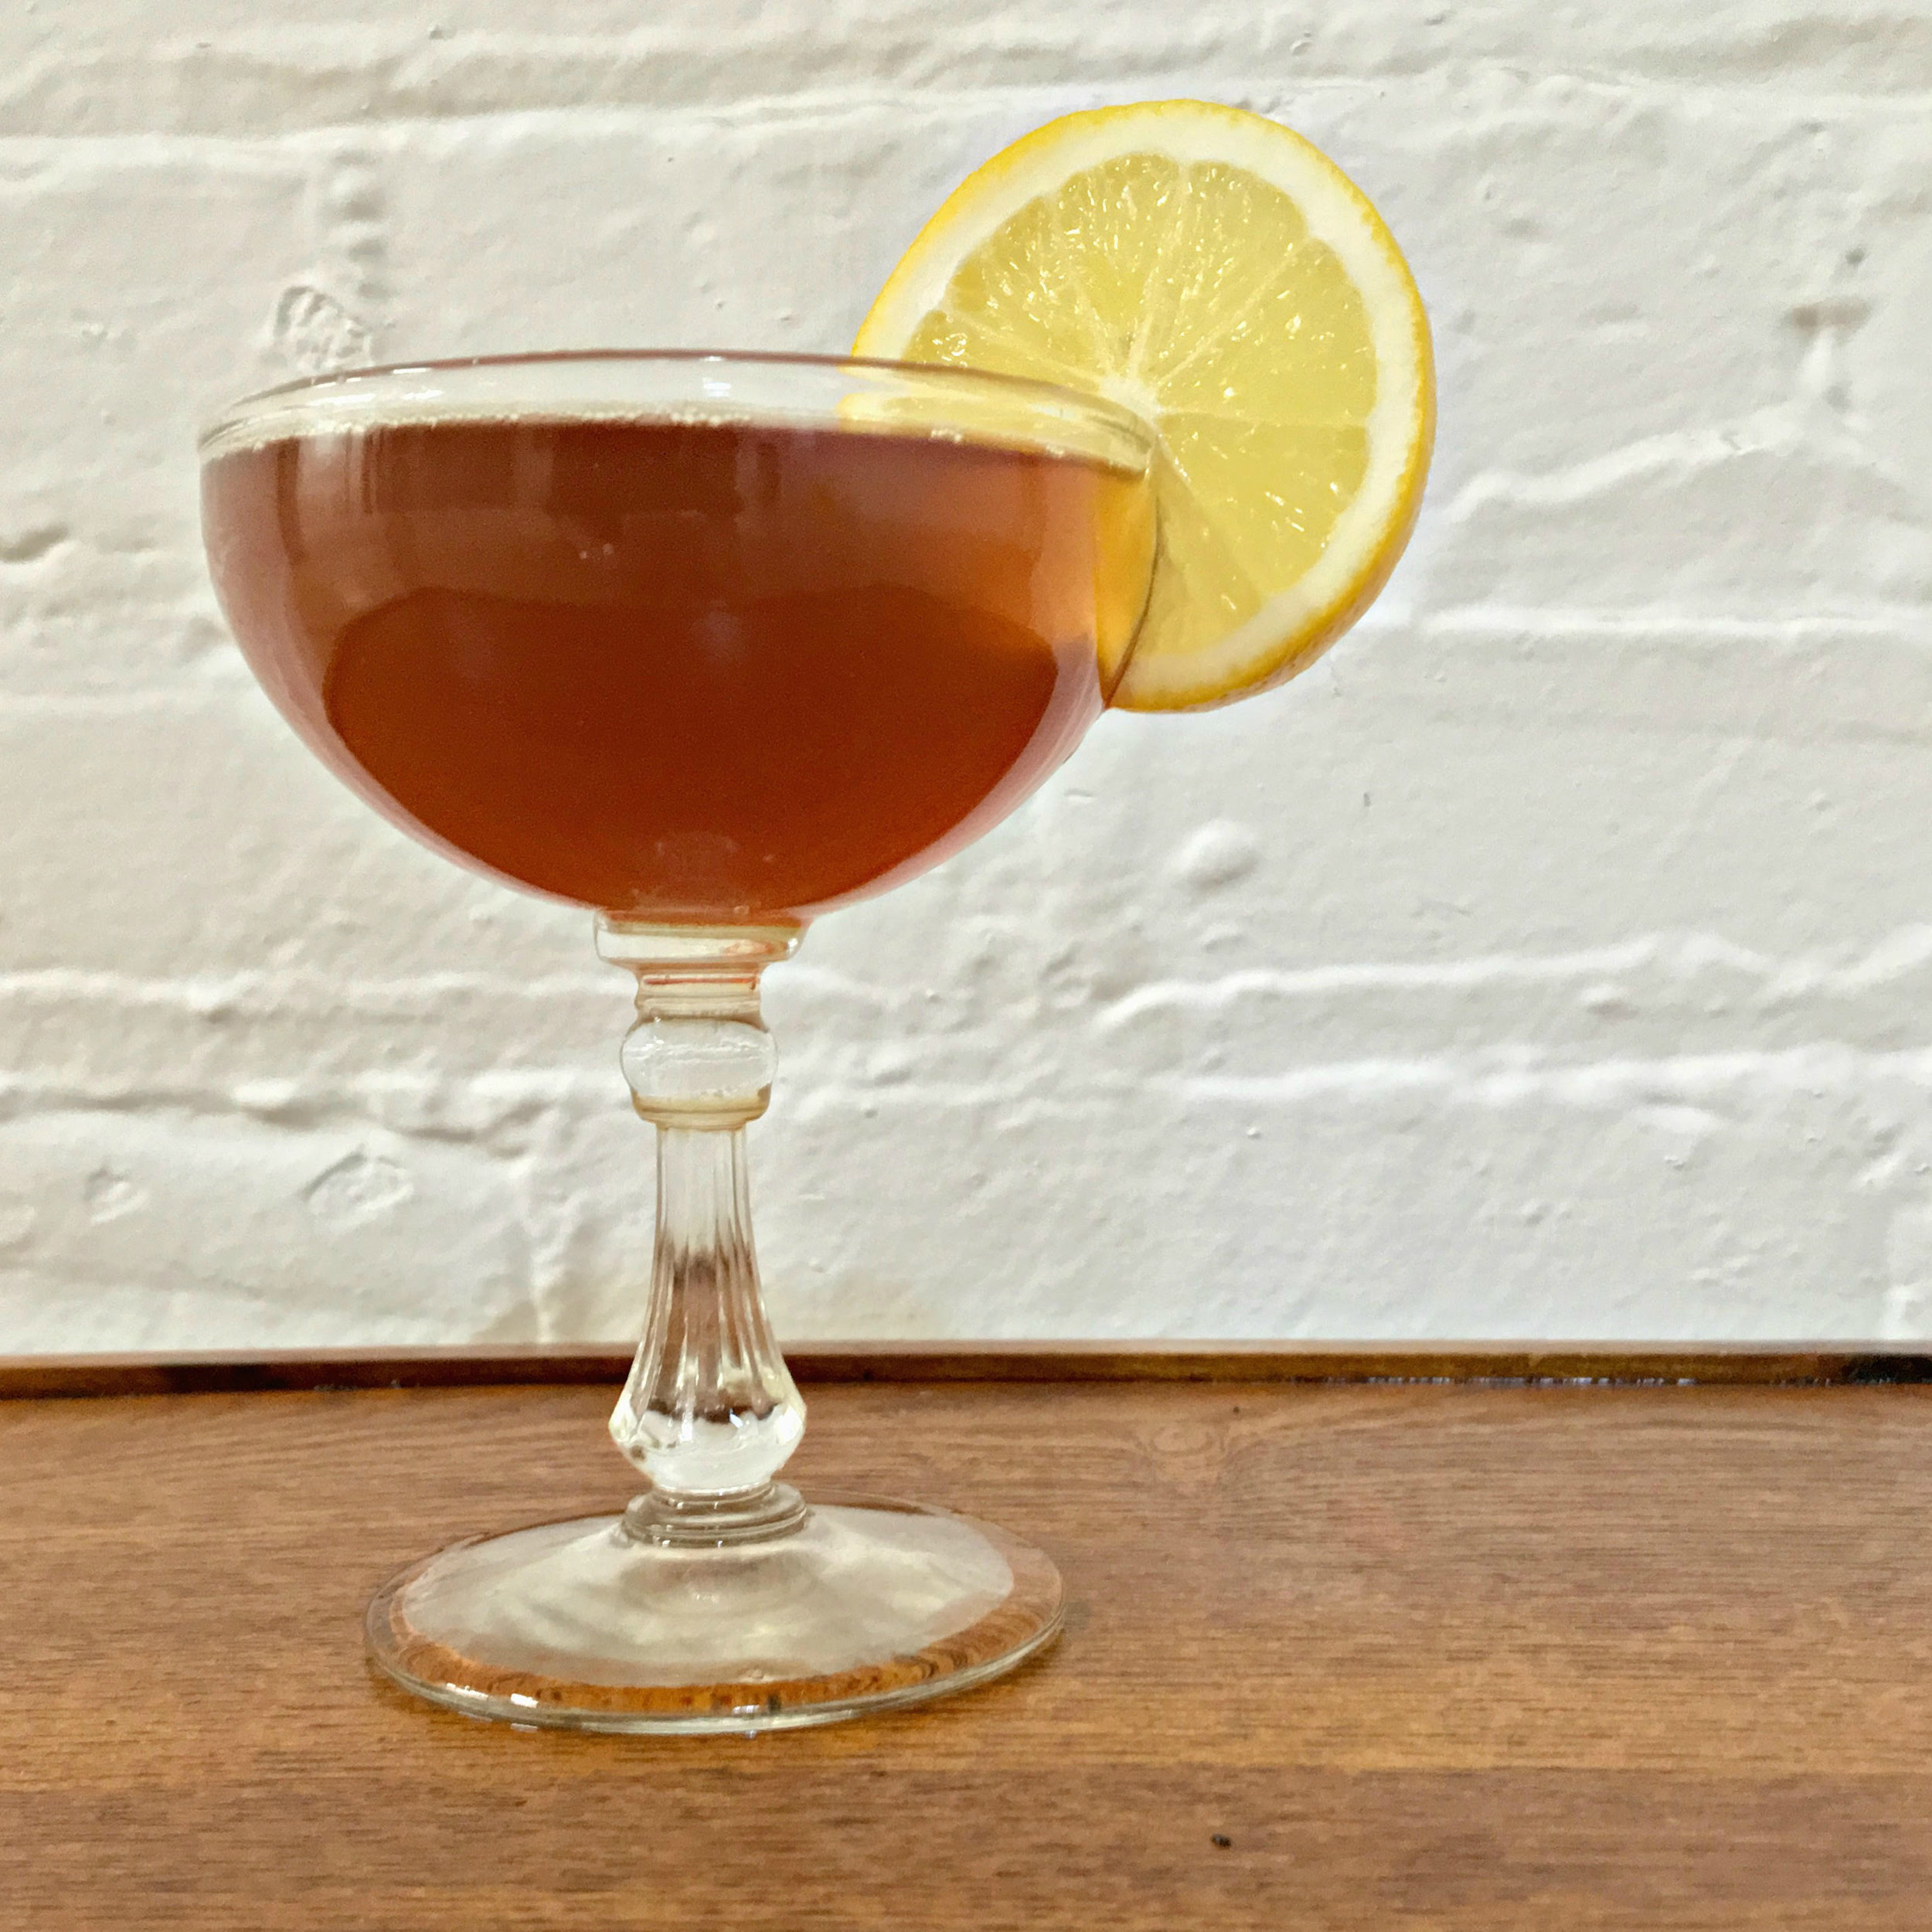 Red Baroness    1 oz  D.L. Franklin Vodka  ½ oz  Haint Absinthe  ½ oz  Pearl Beverage Co.       Vanilla Rooibos Tea Syrup     2 dashes  Aviation Lavender Bitters from Portland Bitters Project Top with a splash of soda water and a squeeze of lemon